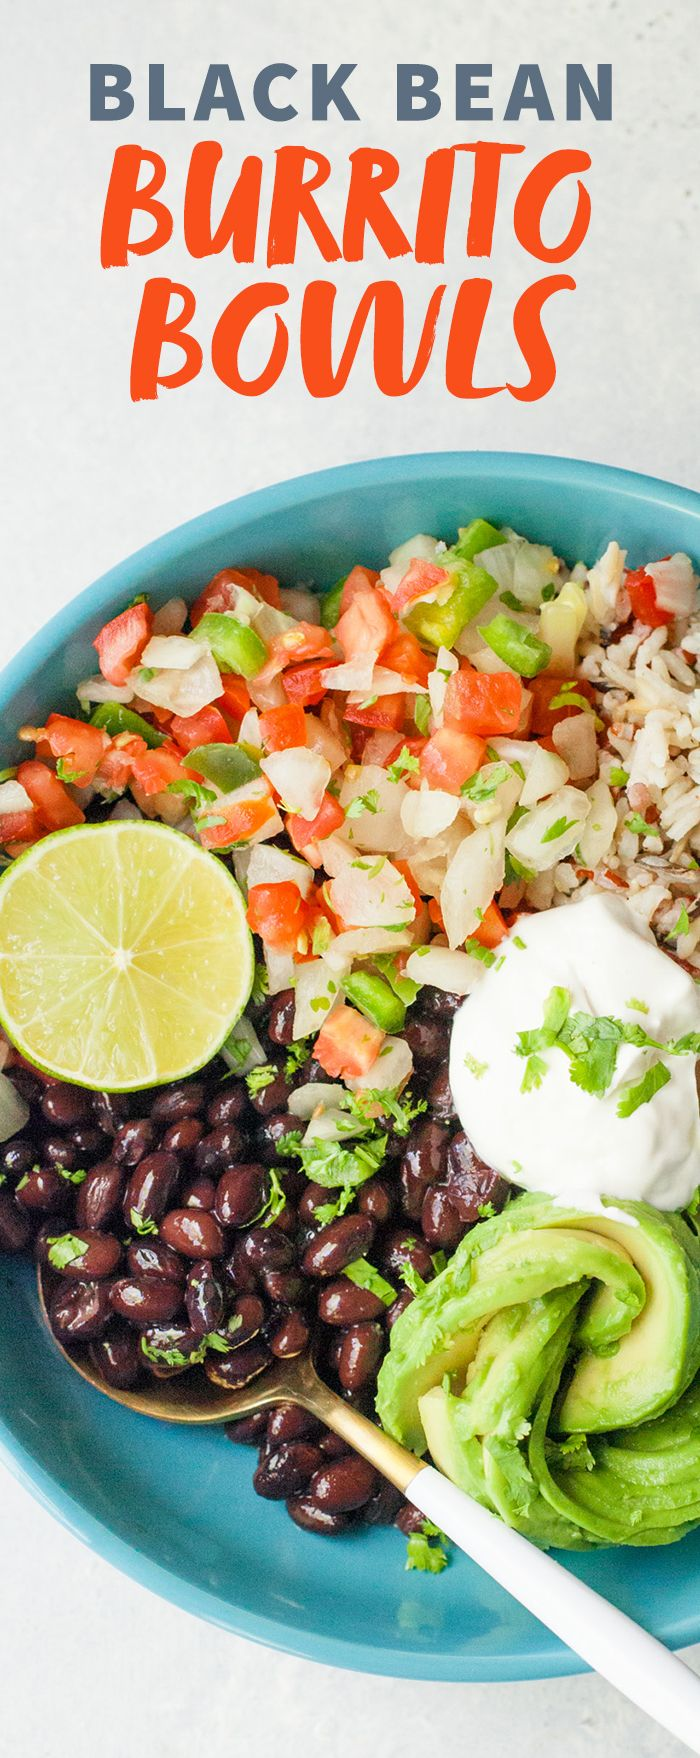 Black Bean Burrito Bowls: perfect for lunch or a healthy dinner option!